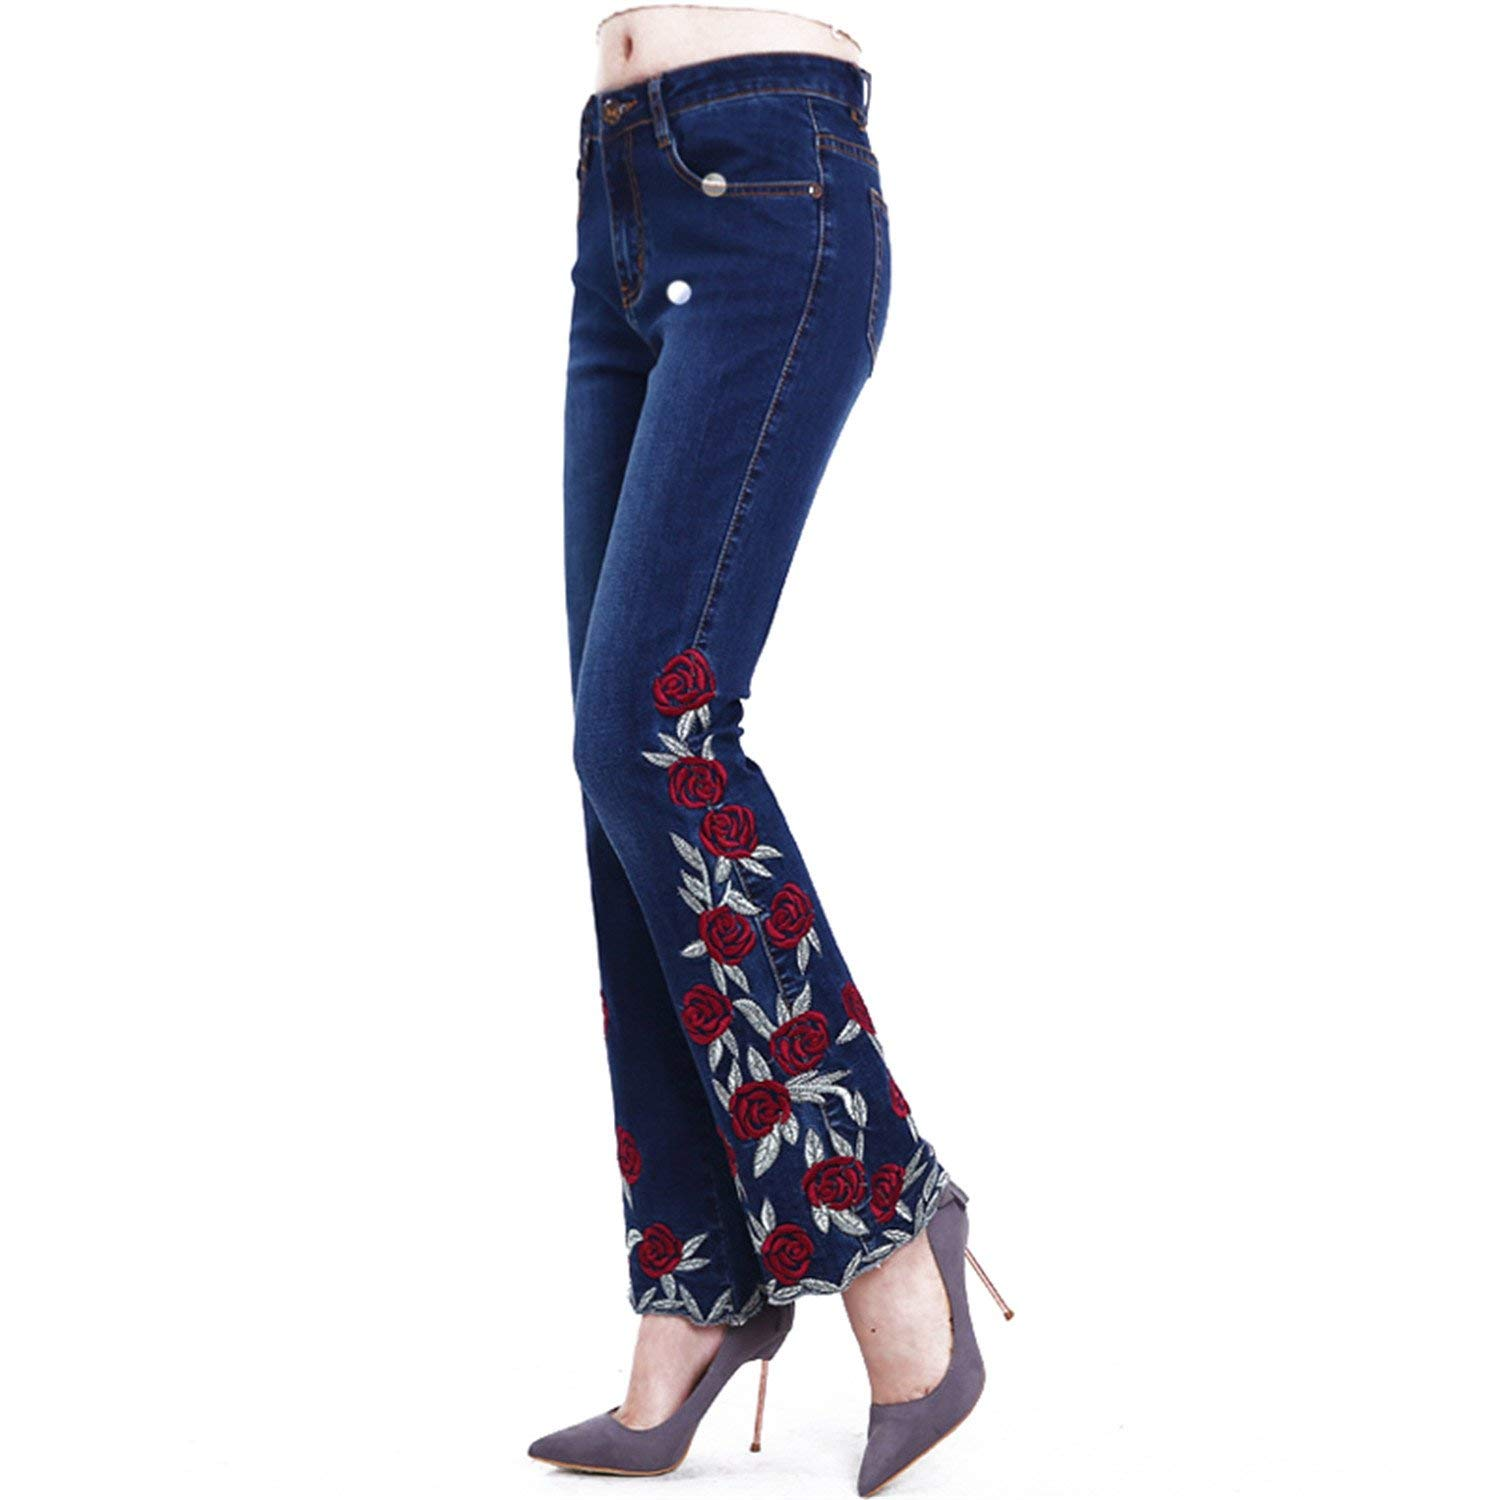 770a961052 Get Quotations · Vilma Reynoso Woman Jeans Bell Bottom Jeans Embroidered  High Stretch Flared Pants Flowers Embroidery Blue Jeans